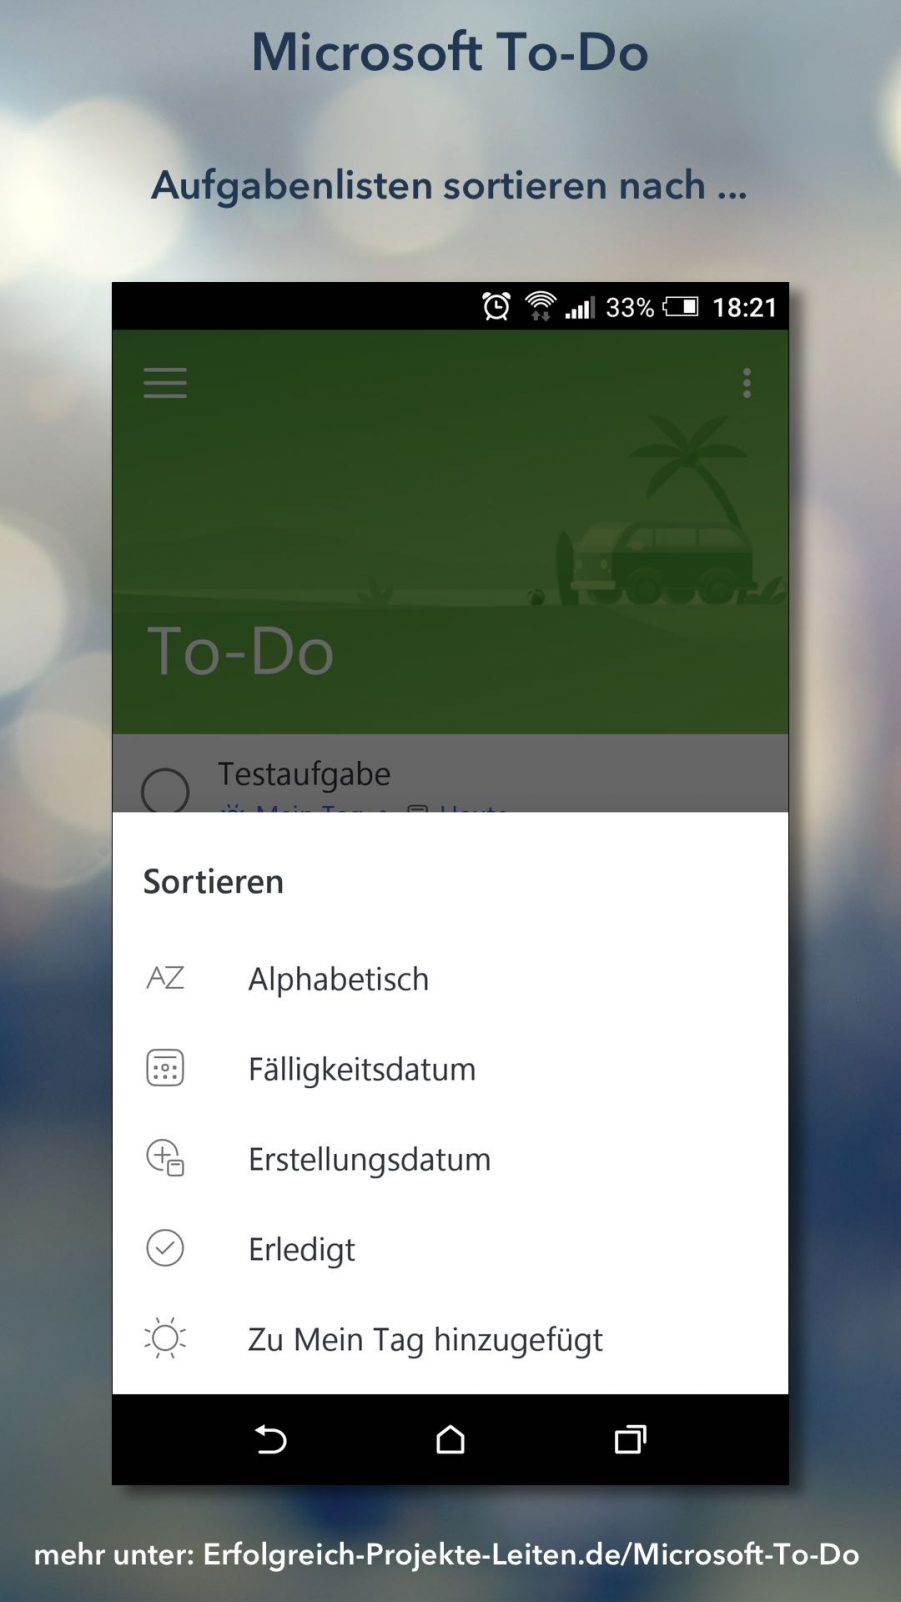 Microsoft To-Do - Listen sortieren